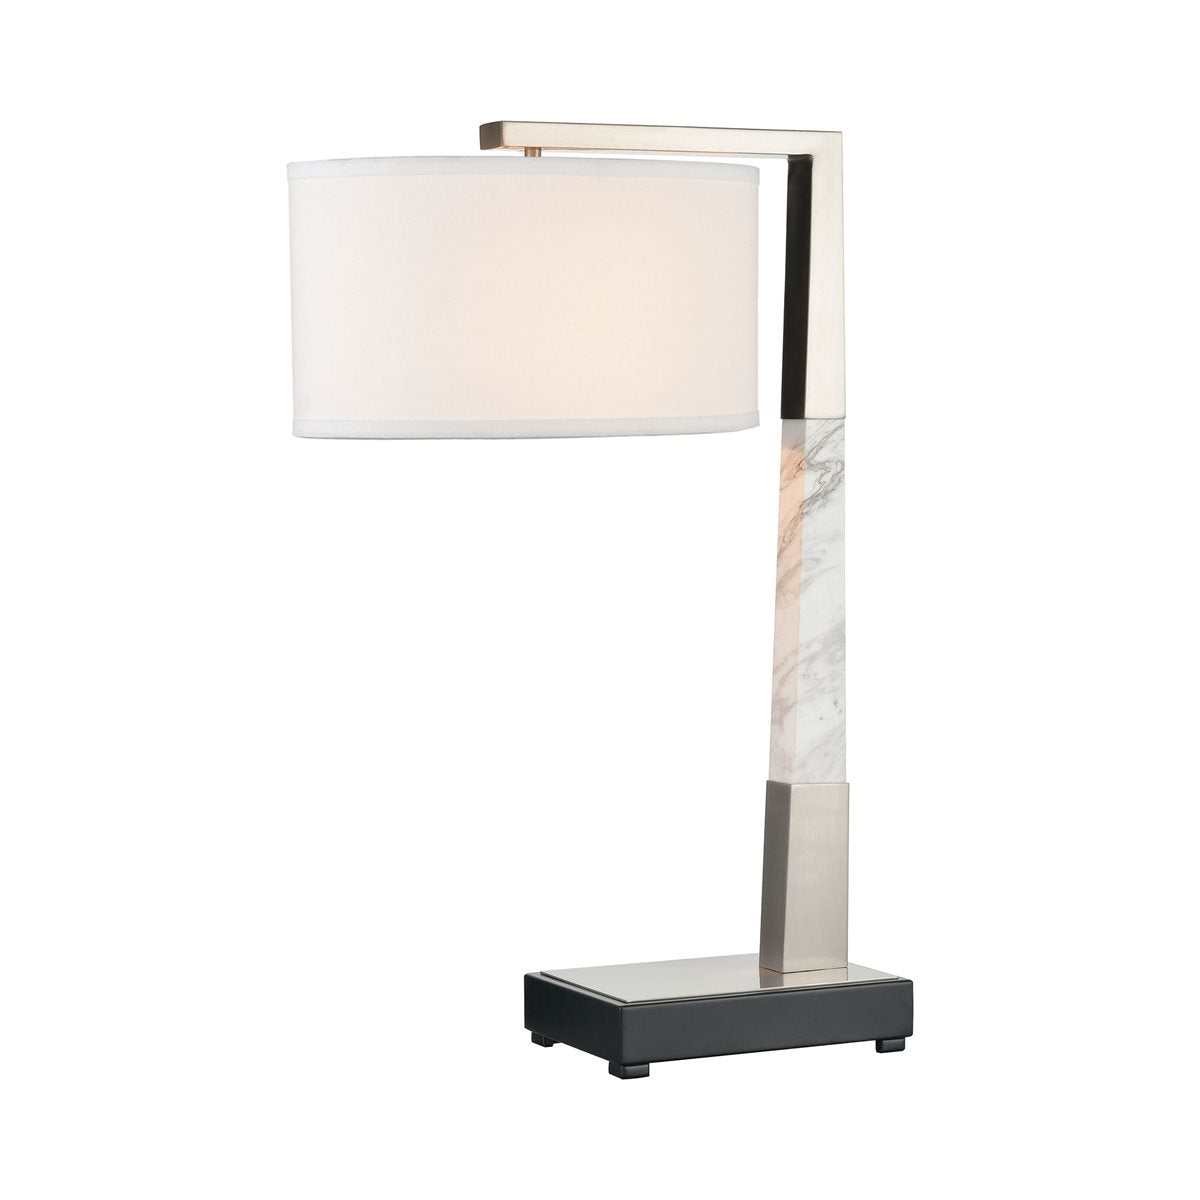 Lovecup LUXE TABLE LAMP IN BRUSHED NICKEL WITH USB CHARGING PORT L504